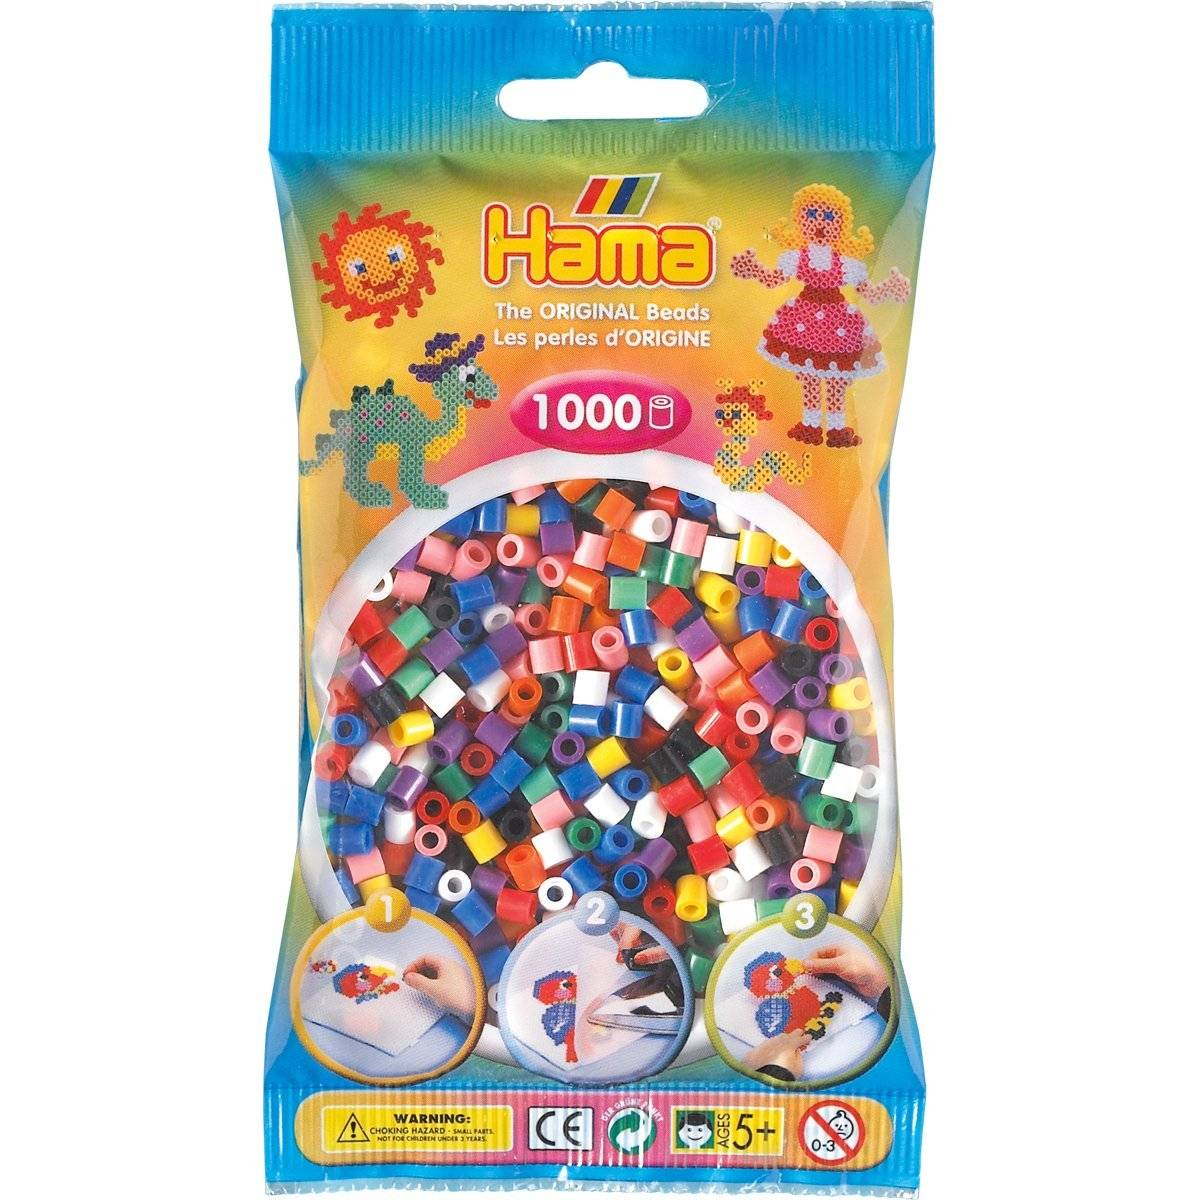 hama-beads-207-00-solid-mix-79fe6b463f659e2c17817320607d6e7849234ee5.jpeg